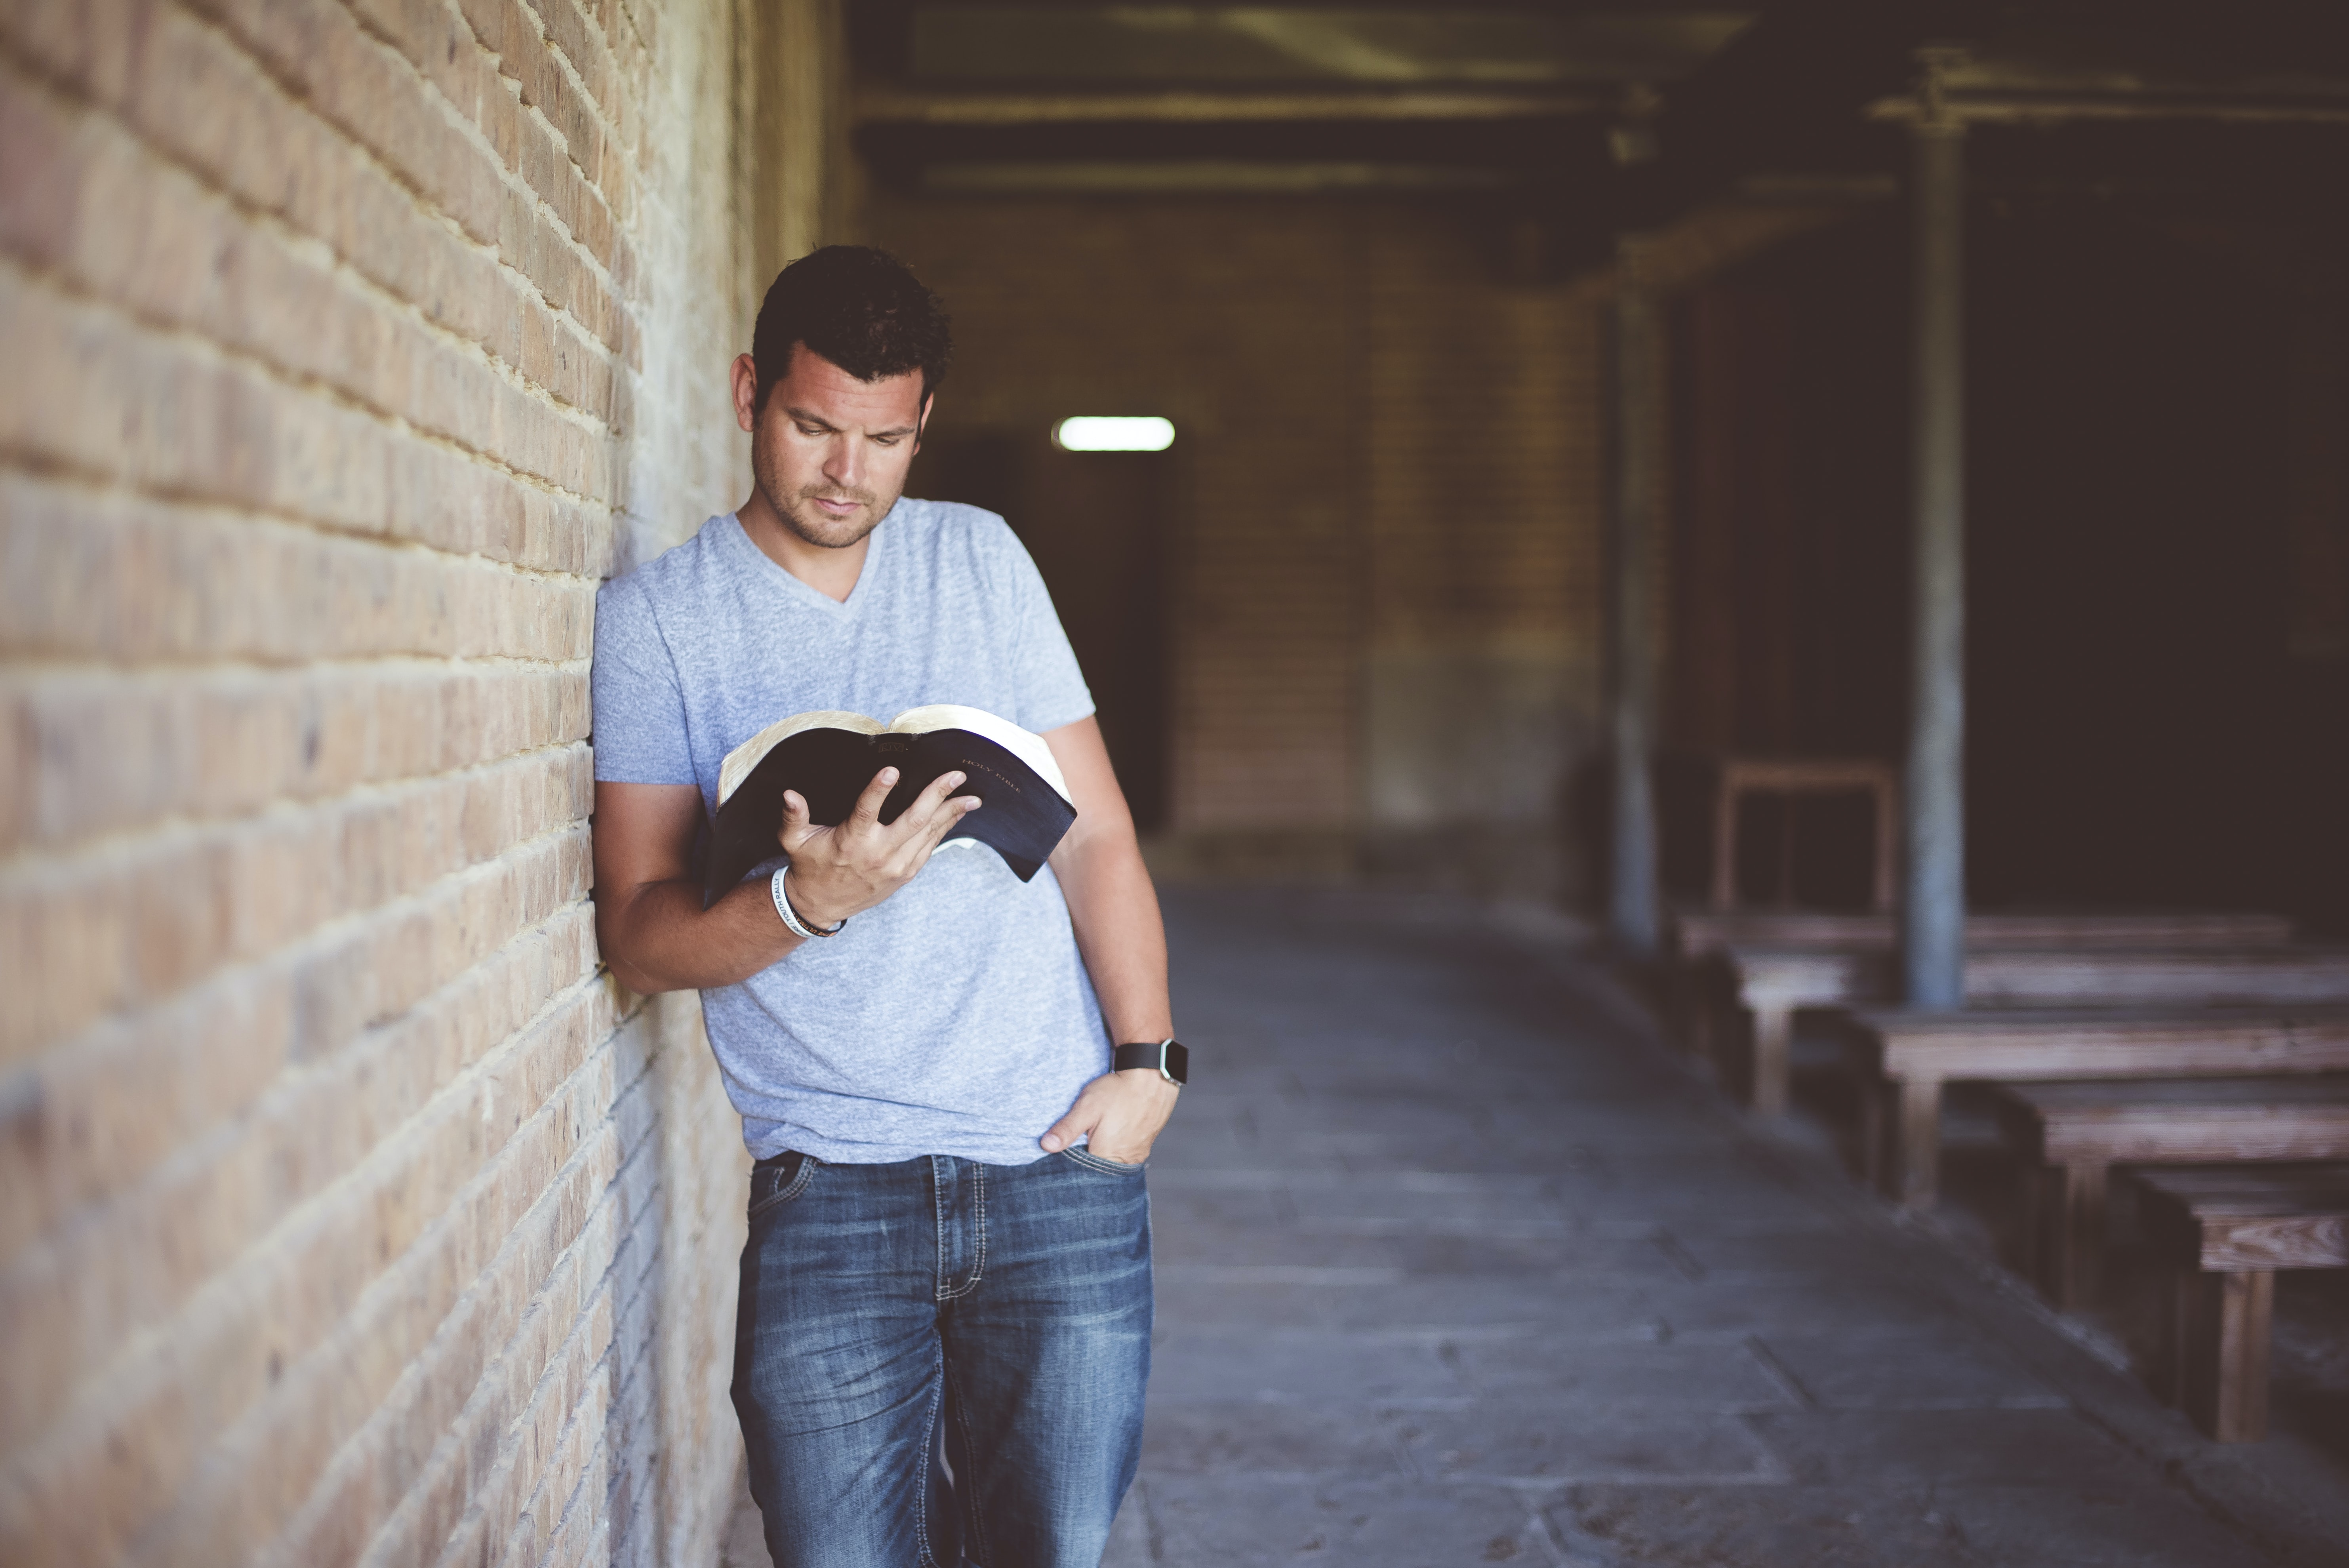 A man leaning against a wall outside while reading a book.